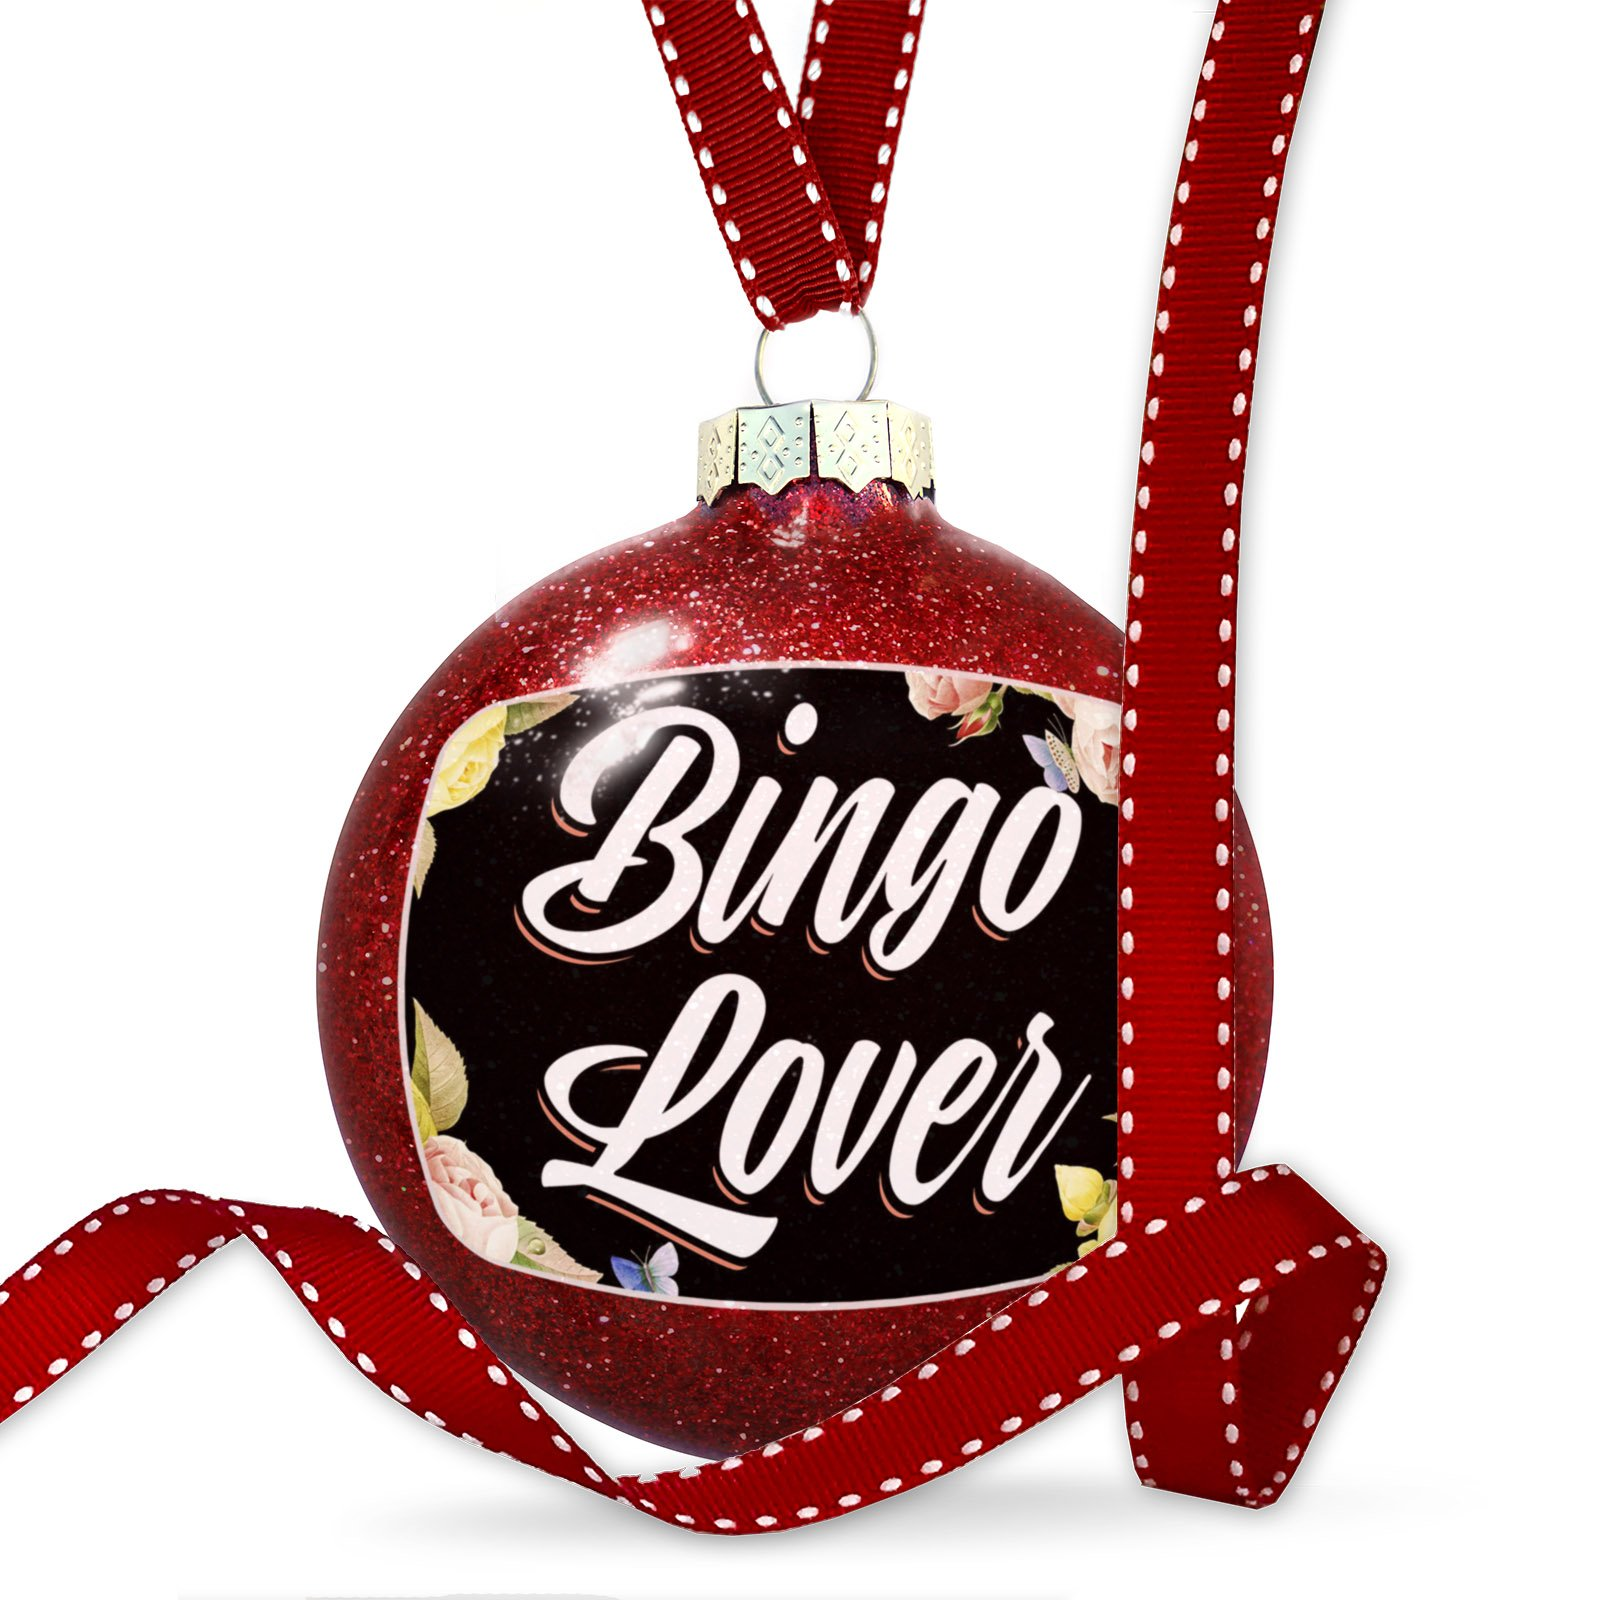 Christmas Decoration Floral Border Bingo Lover Ornament by NEONBLOND